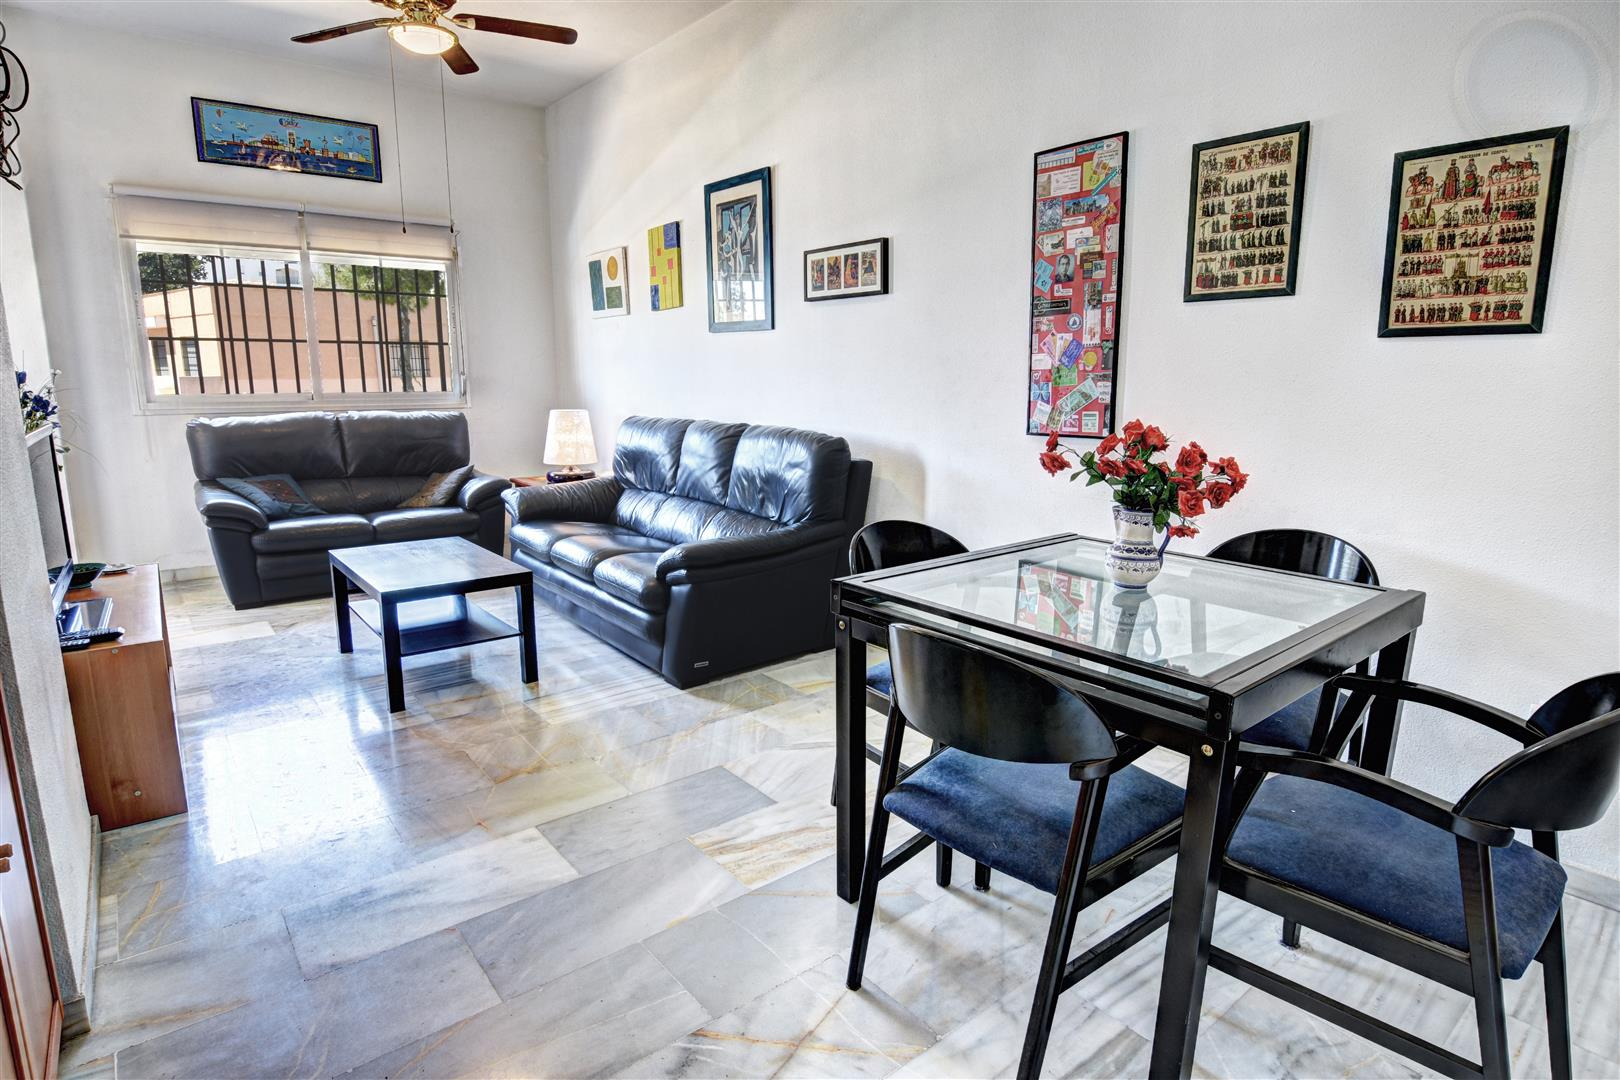 Apartment for sale in Arroyo de la Miel 2